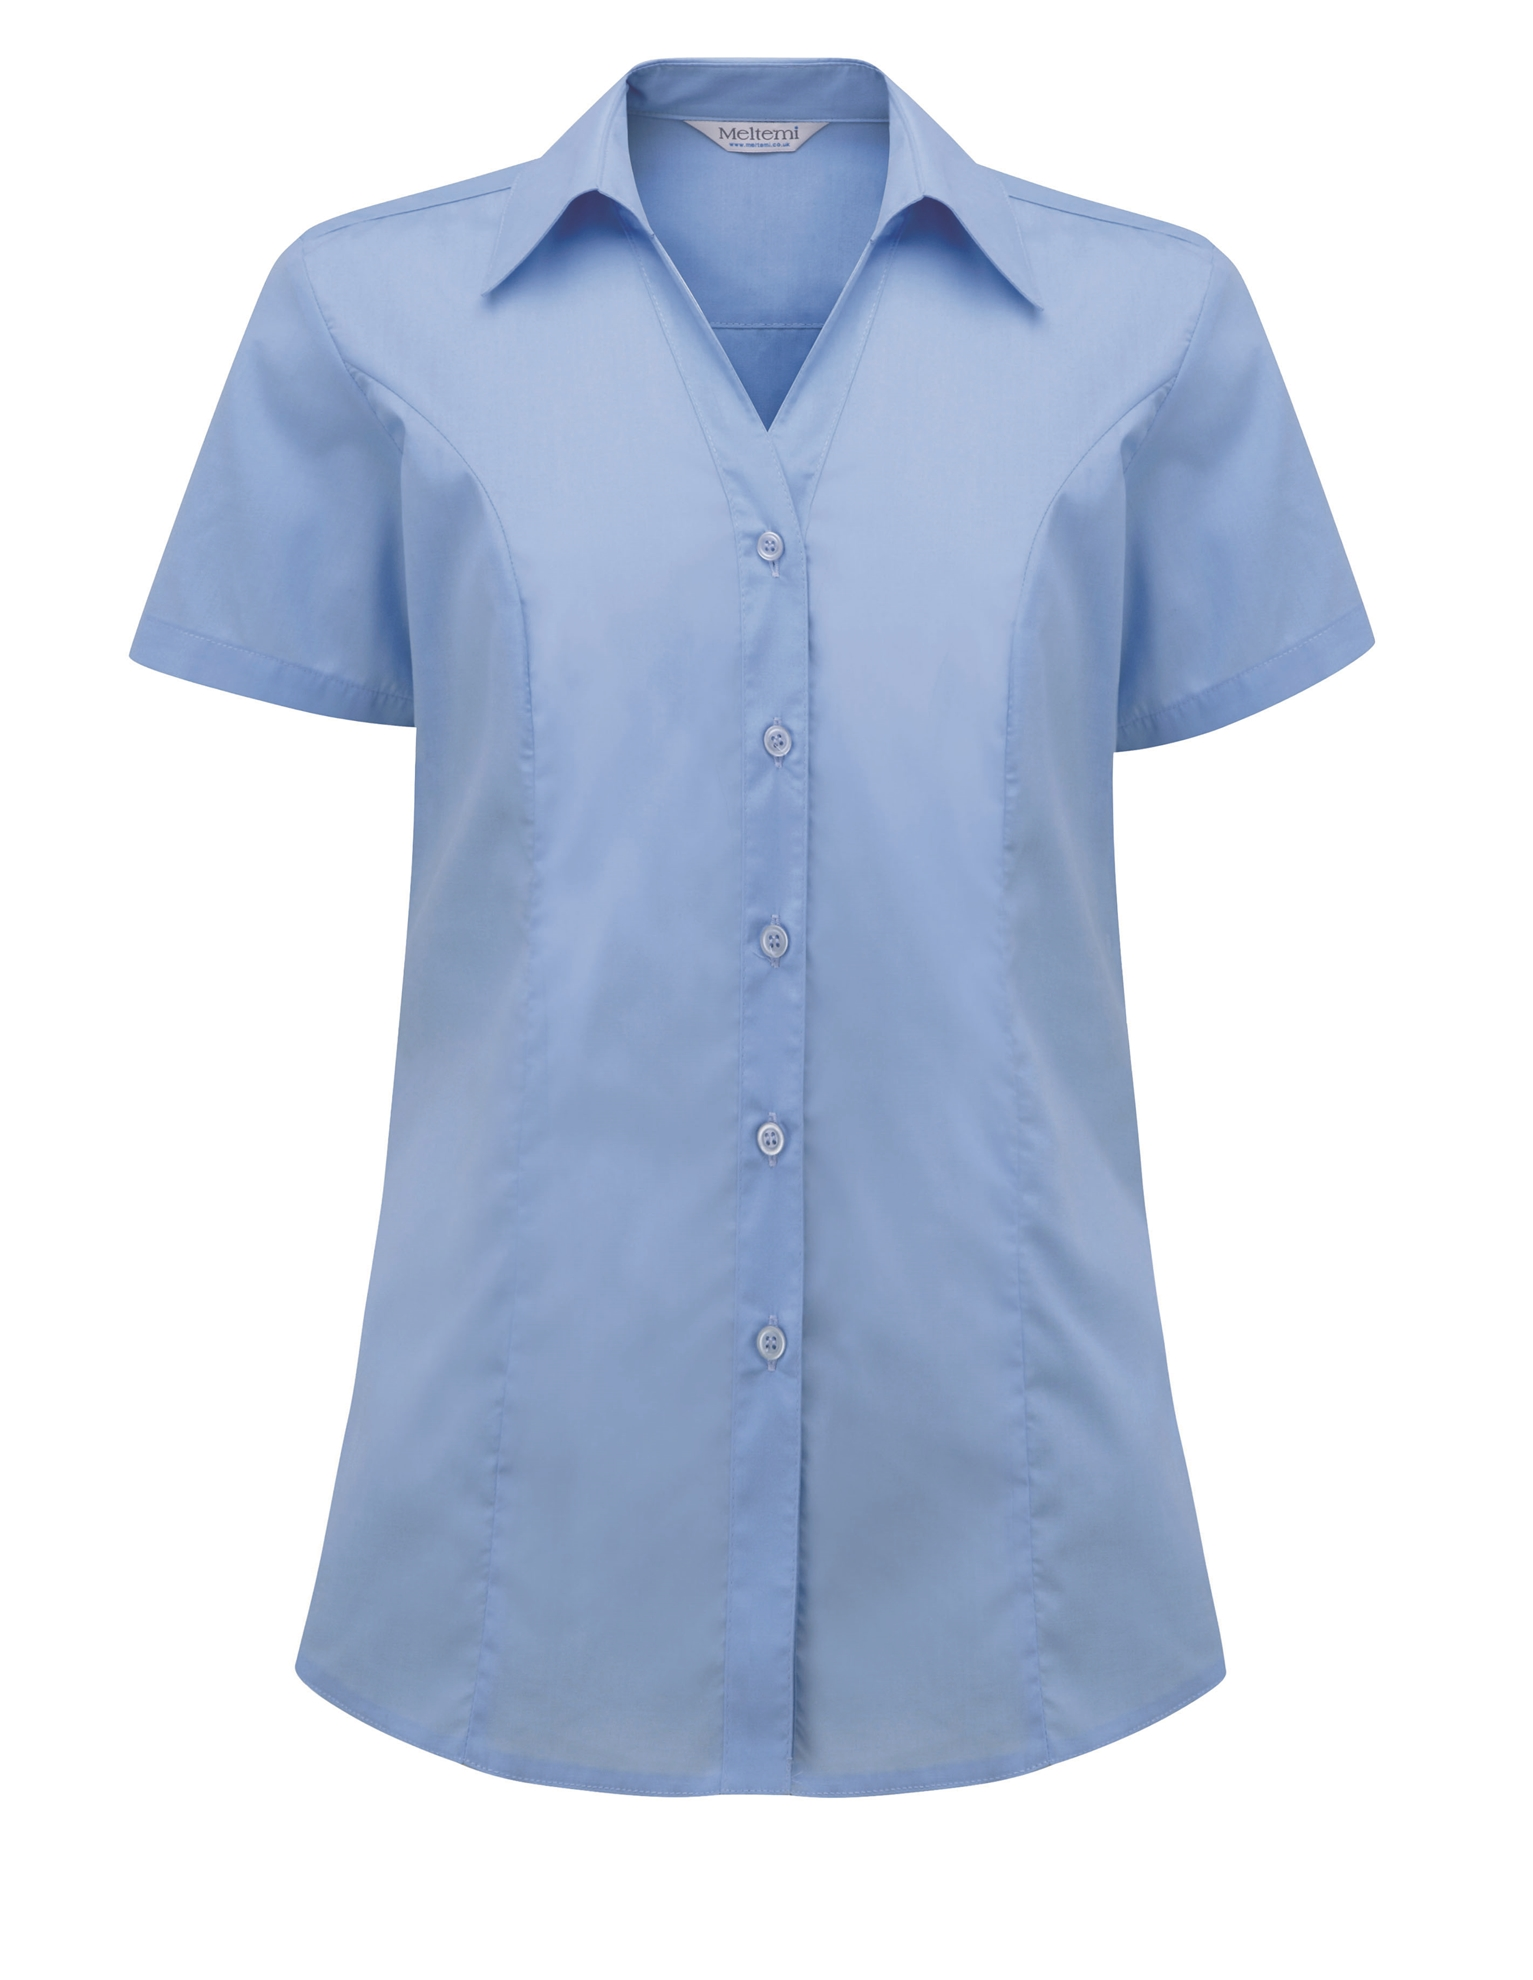 Picture of Semi-Fitted Polycotton Blouse - Plain Light Blue